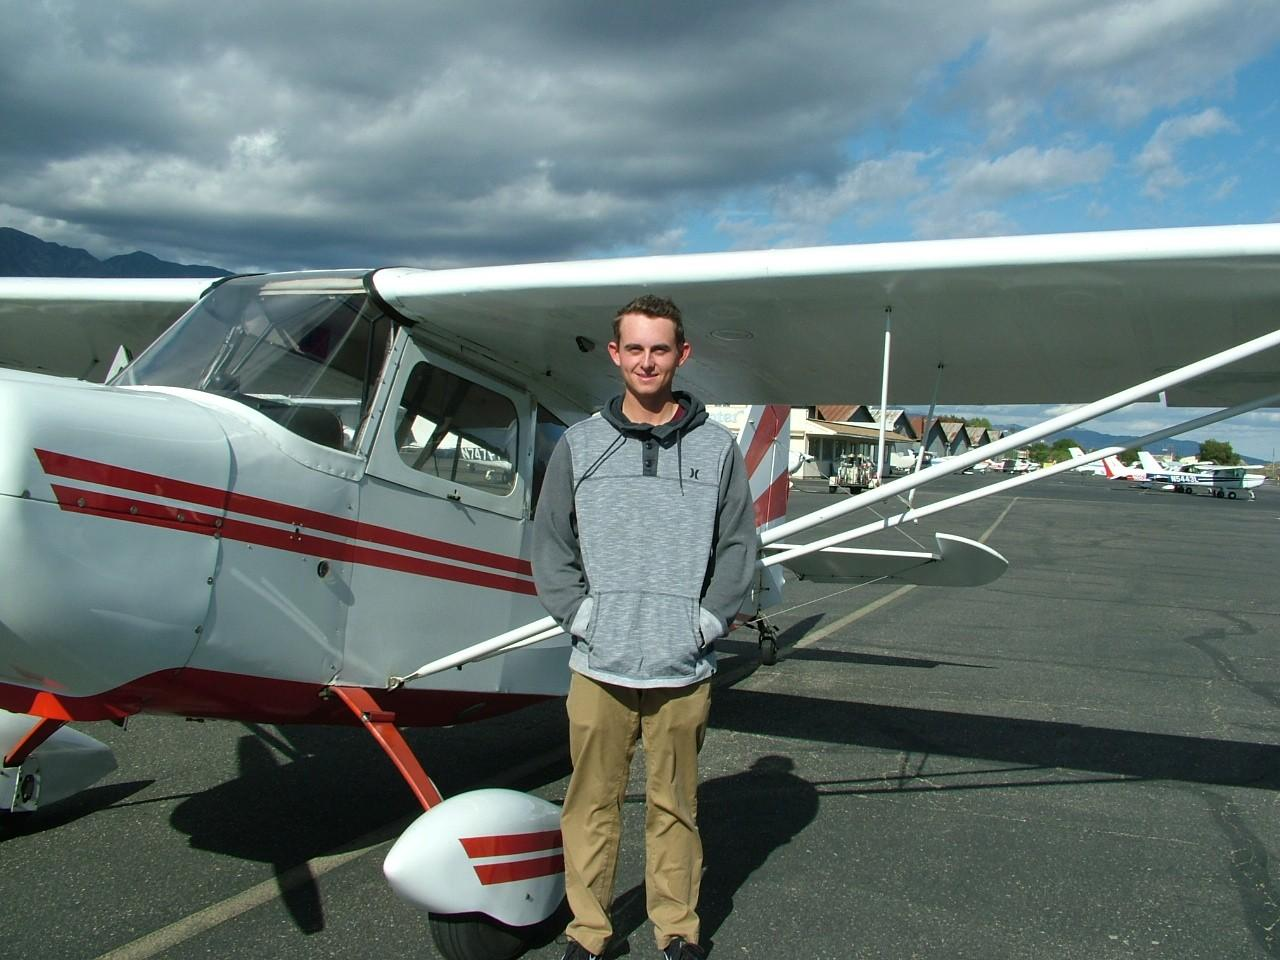 Tailwheel Endorsement - Conner Philpott